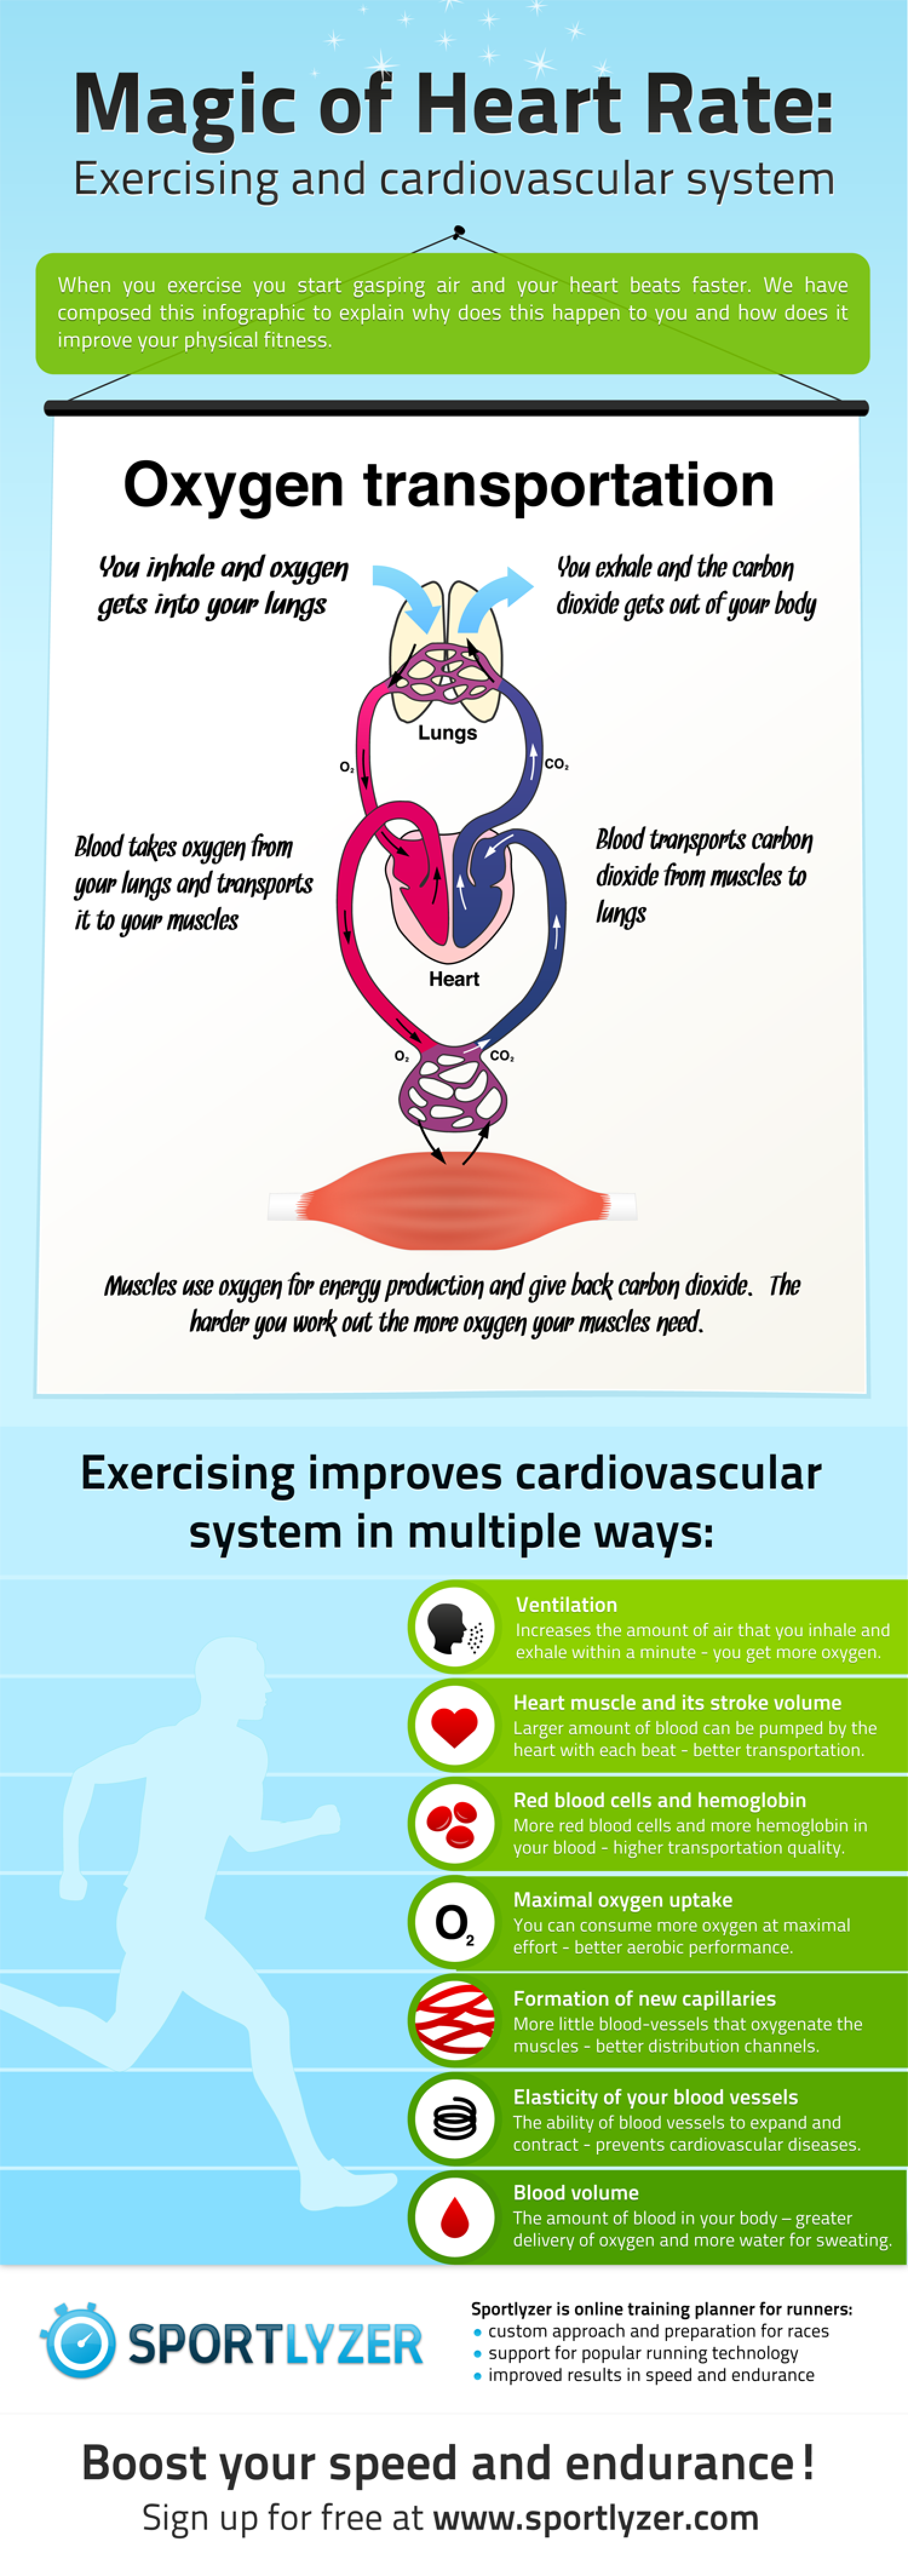 Magic of Heart Rate: Exercising and cardiovascular system Infographic